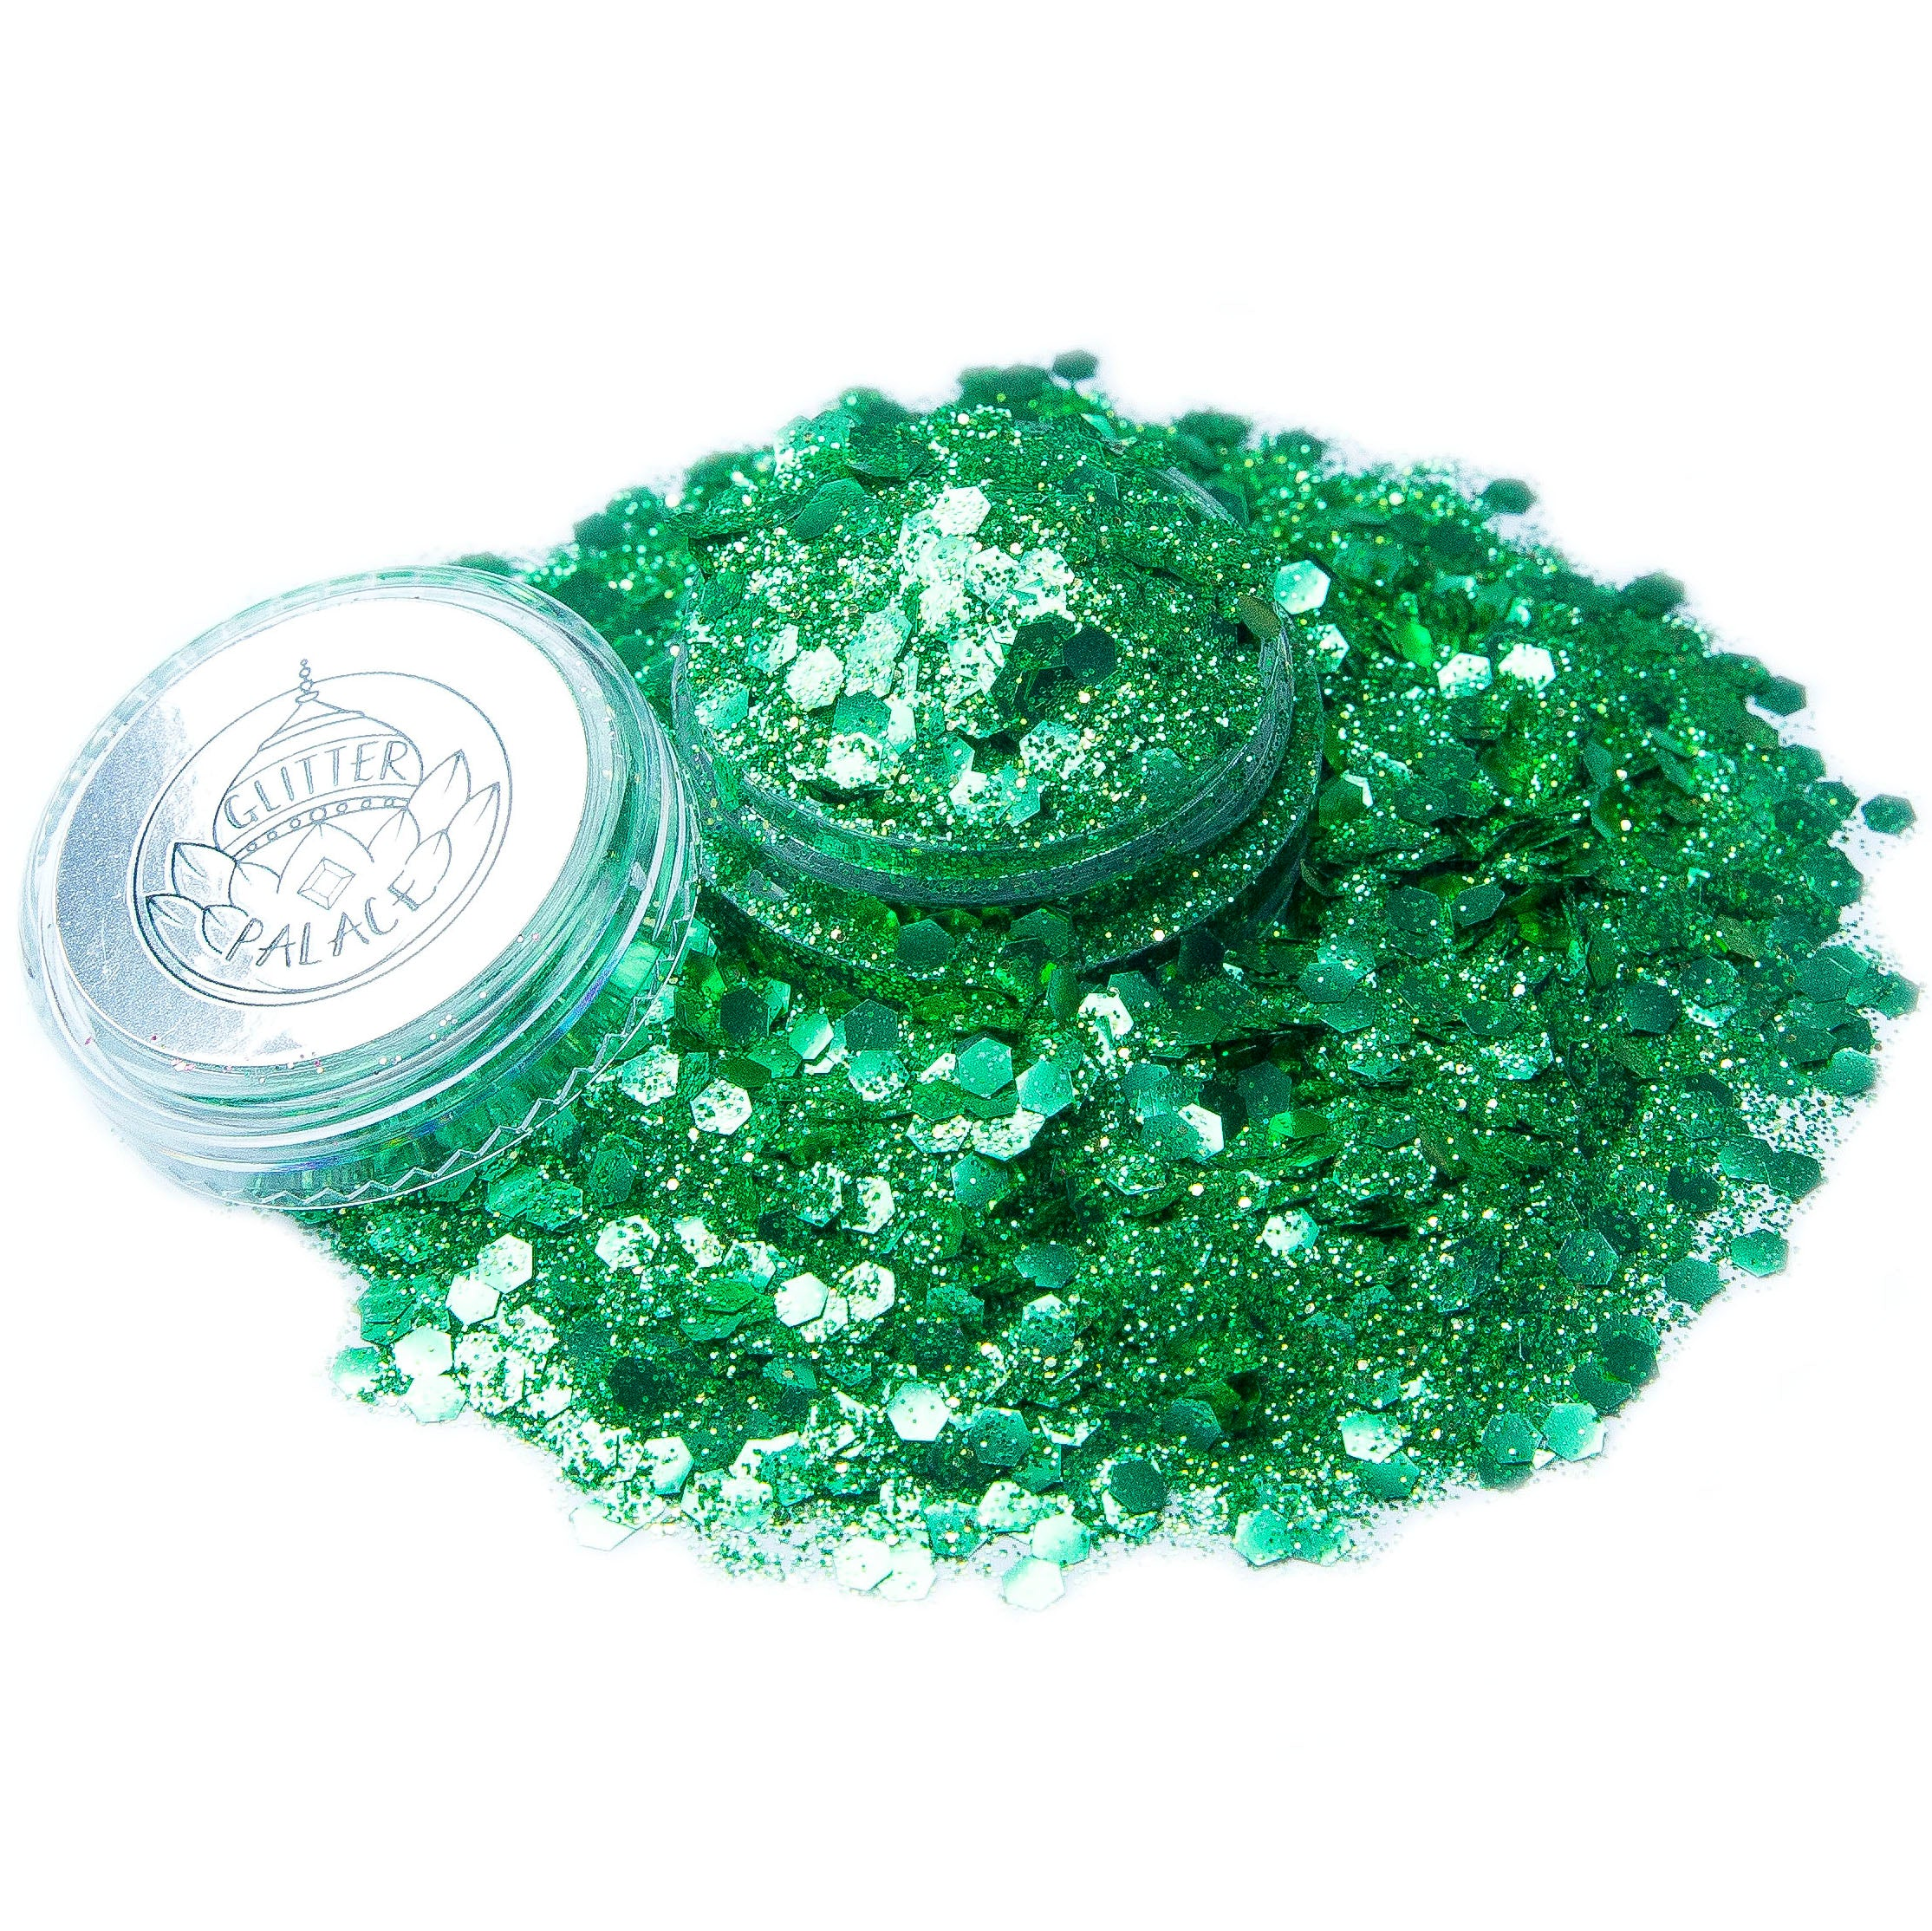 Eden Biodegradable Glitter